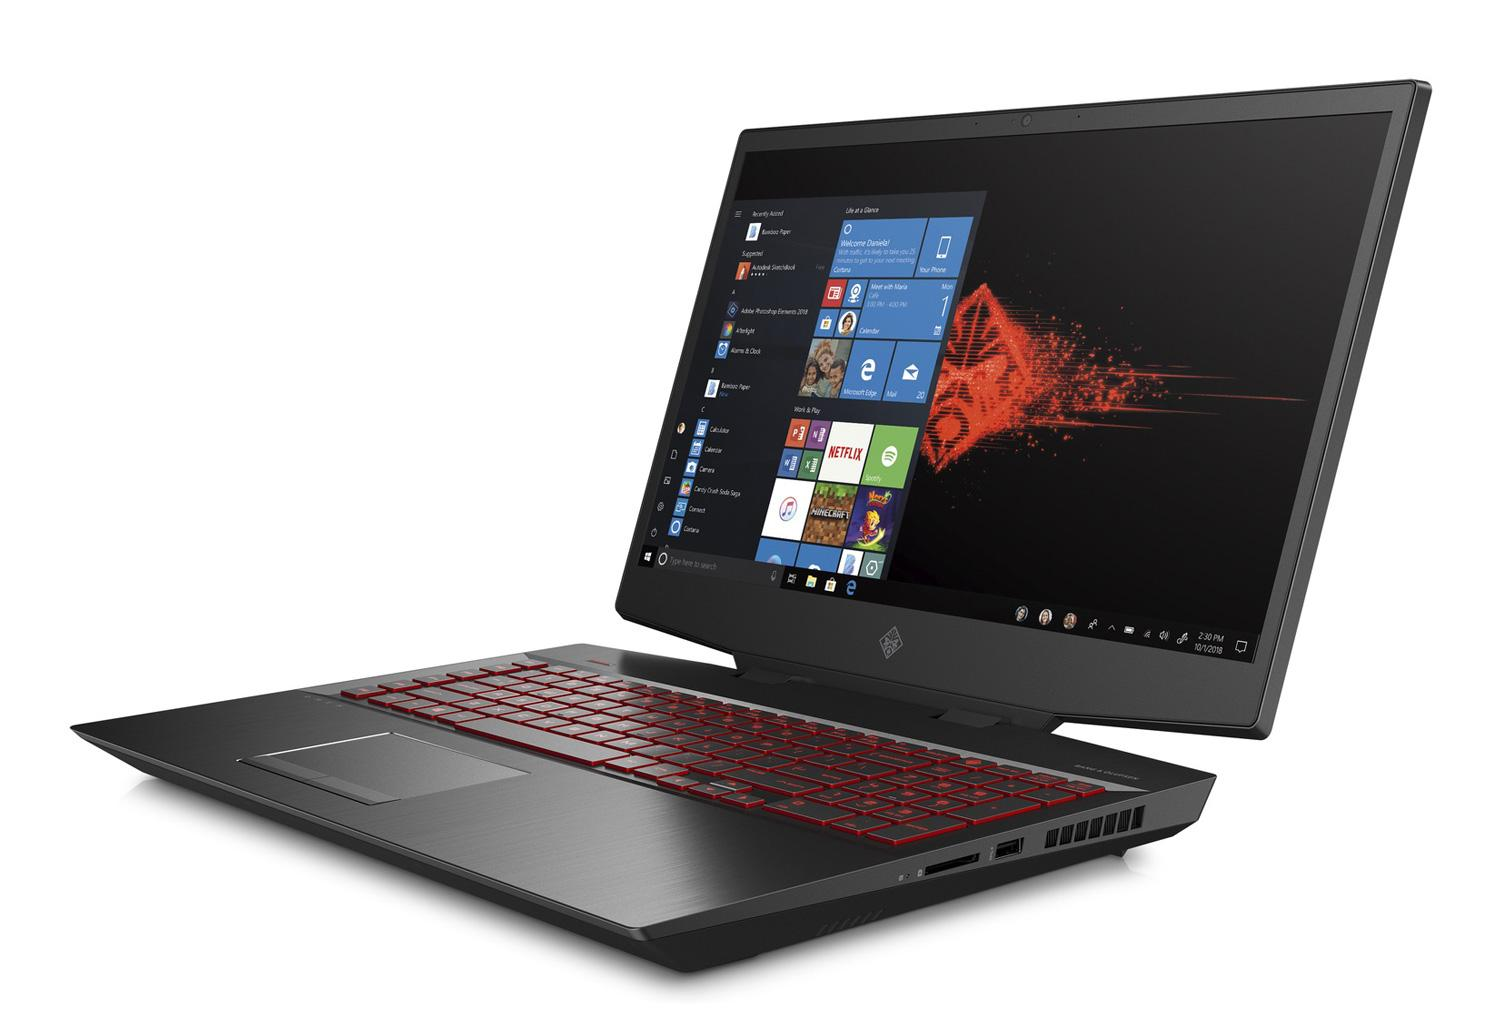 Ordinateur portable HP Omen 17-cb0037nf - Core i9, RTX 2080, IPS 144Hz, SSD Optane H10 - photo 3